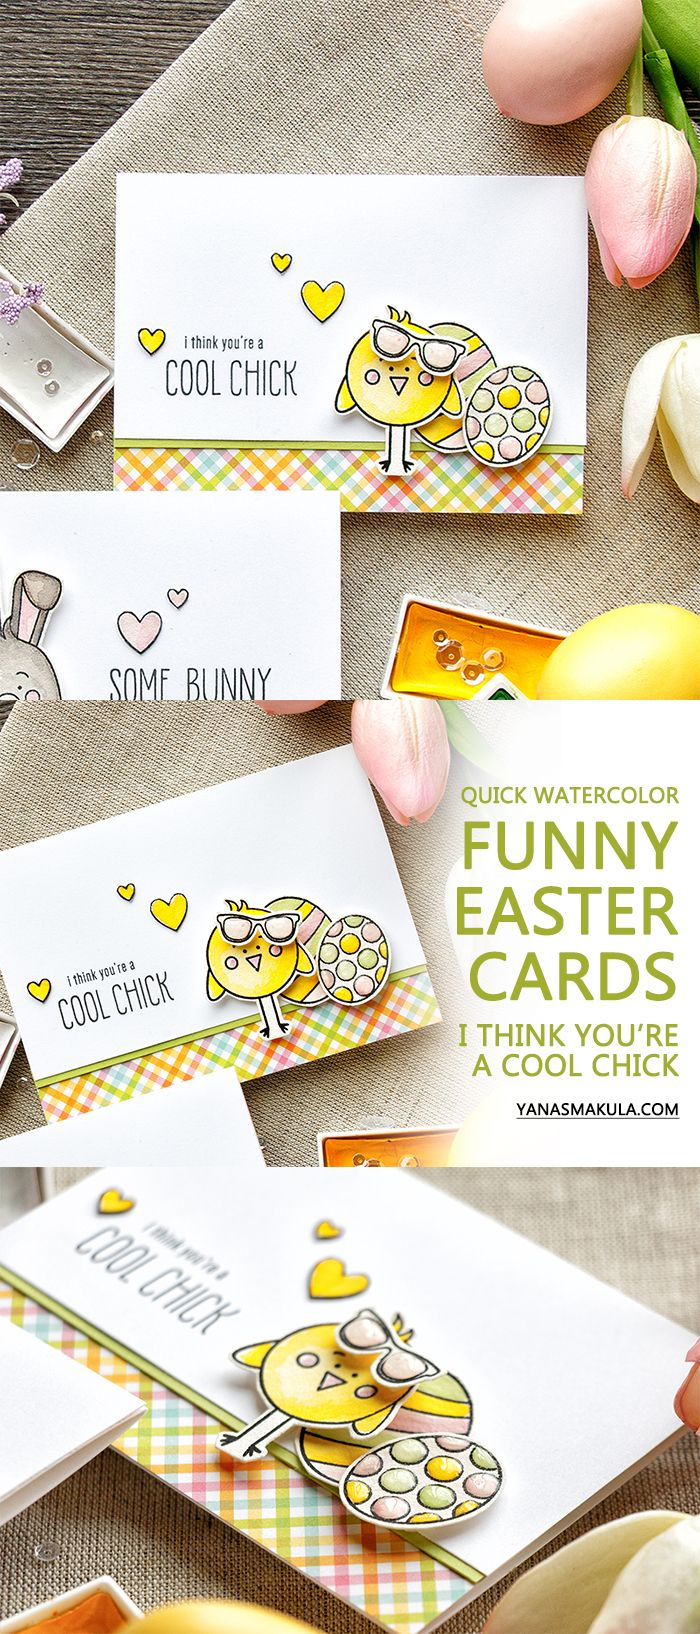 I Think You're a Cool Chick. Quick Watercolor Funny Easter Cards with Simon Says Stamp March 2017 Card Kit. http://www.yanasmakula.com/?p=57059